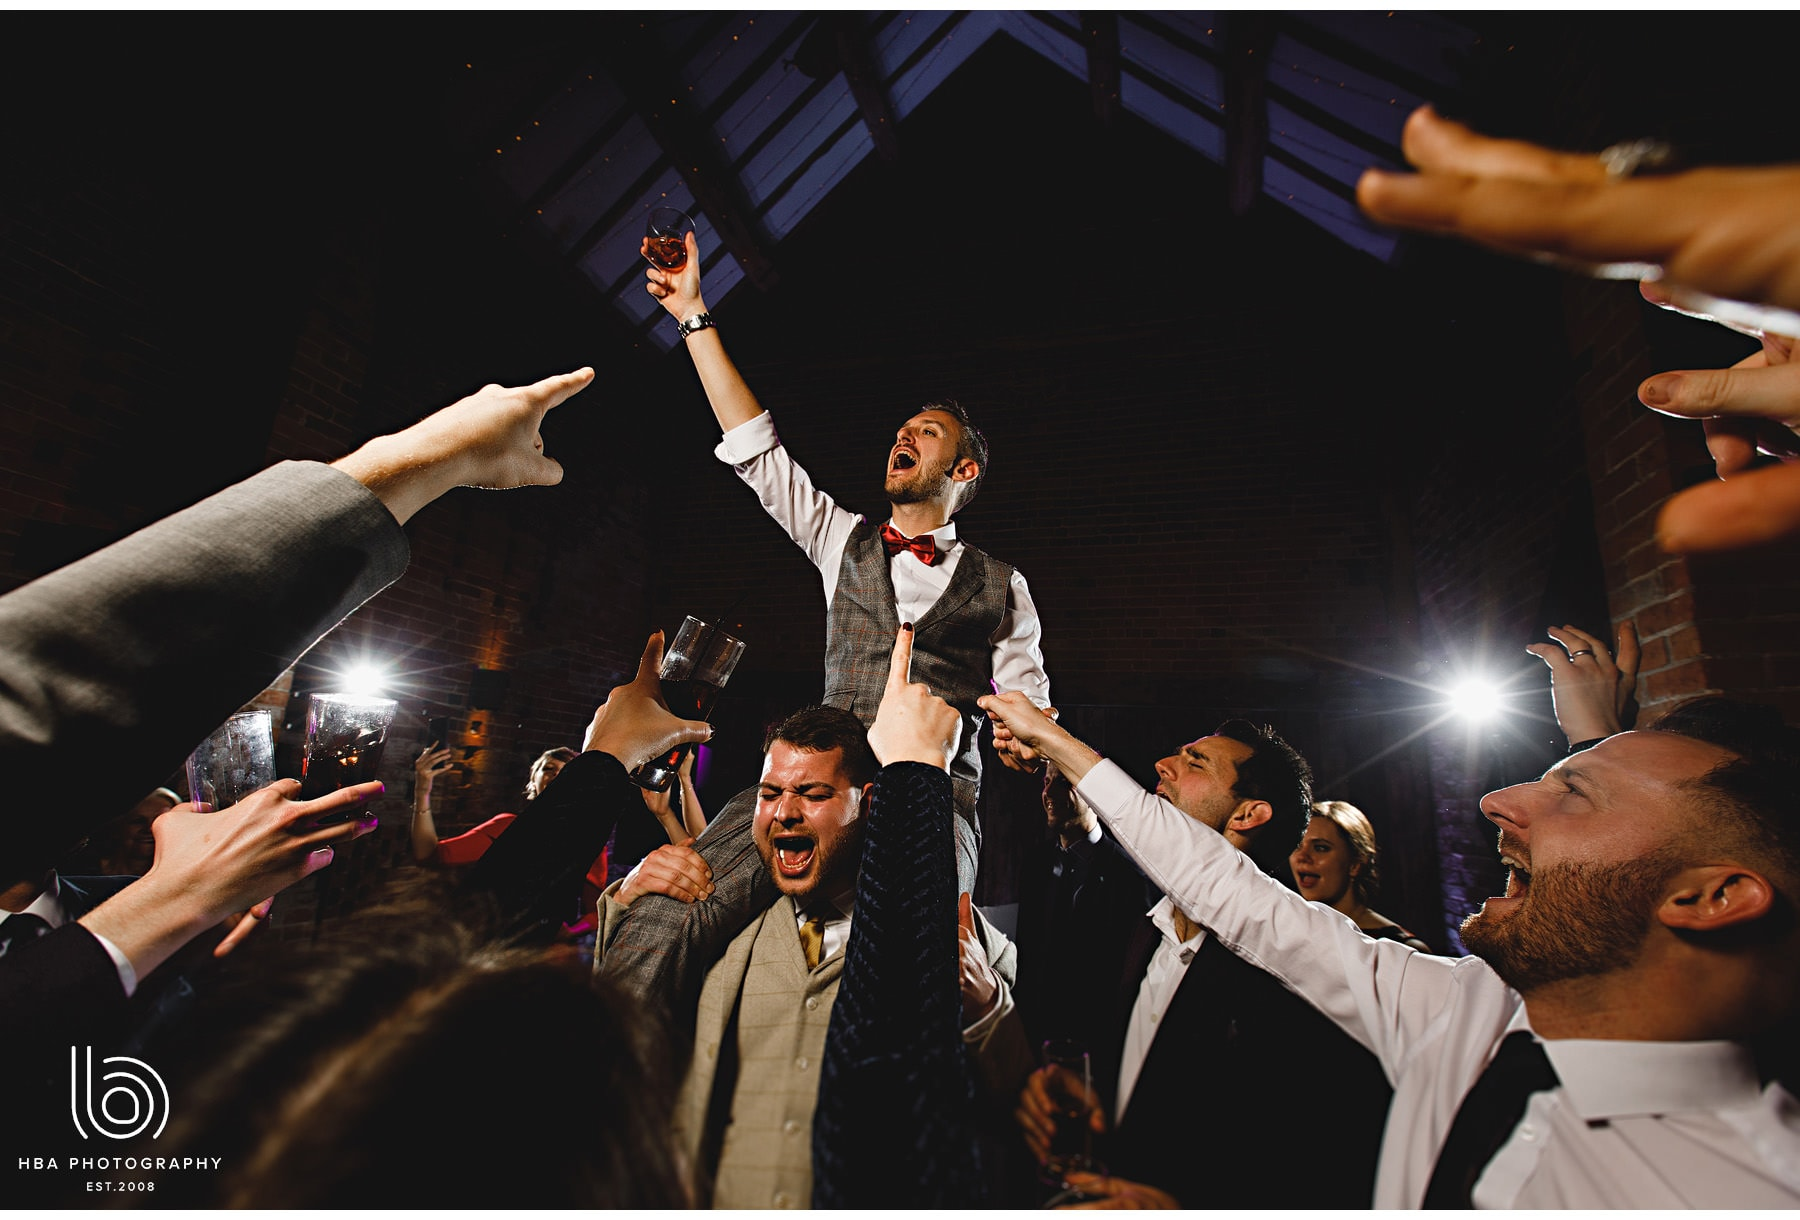 the groom lifted onto friends shoulders